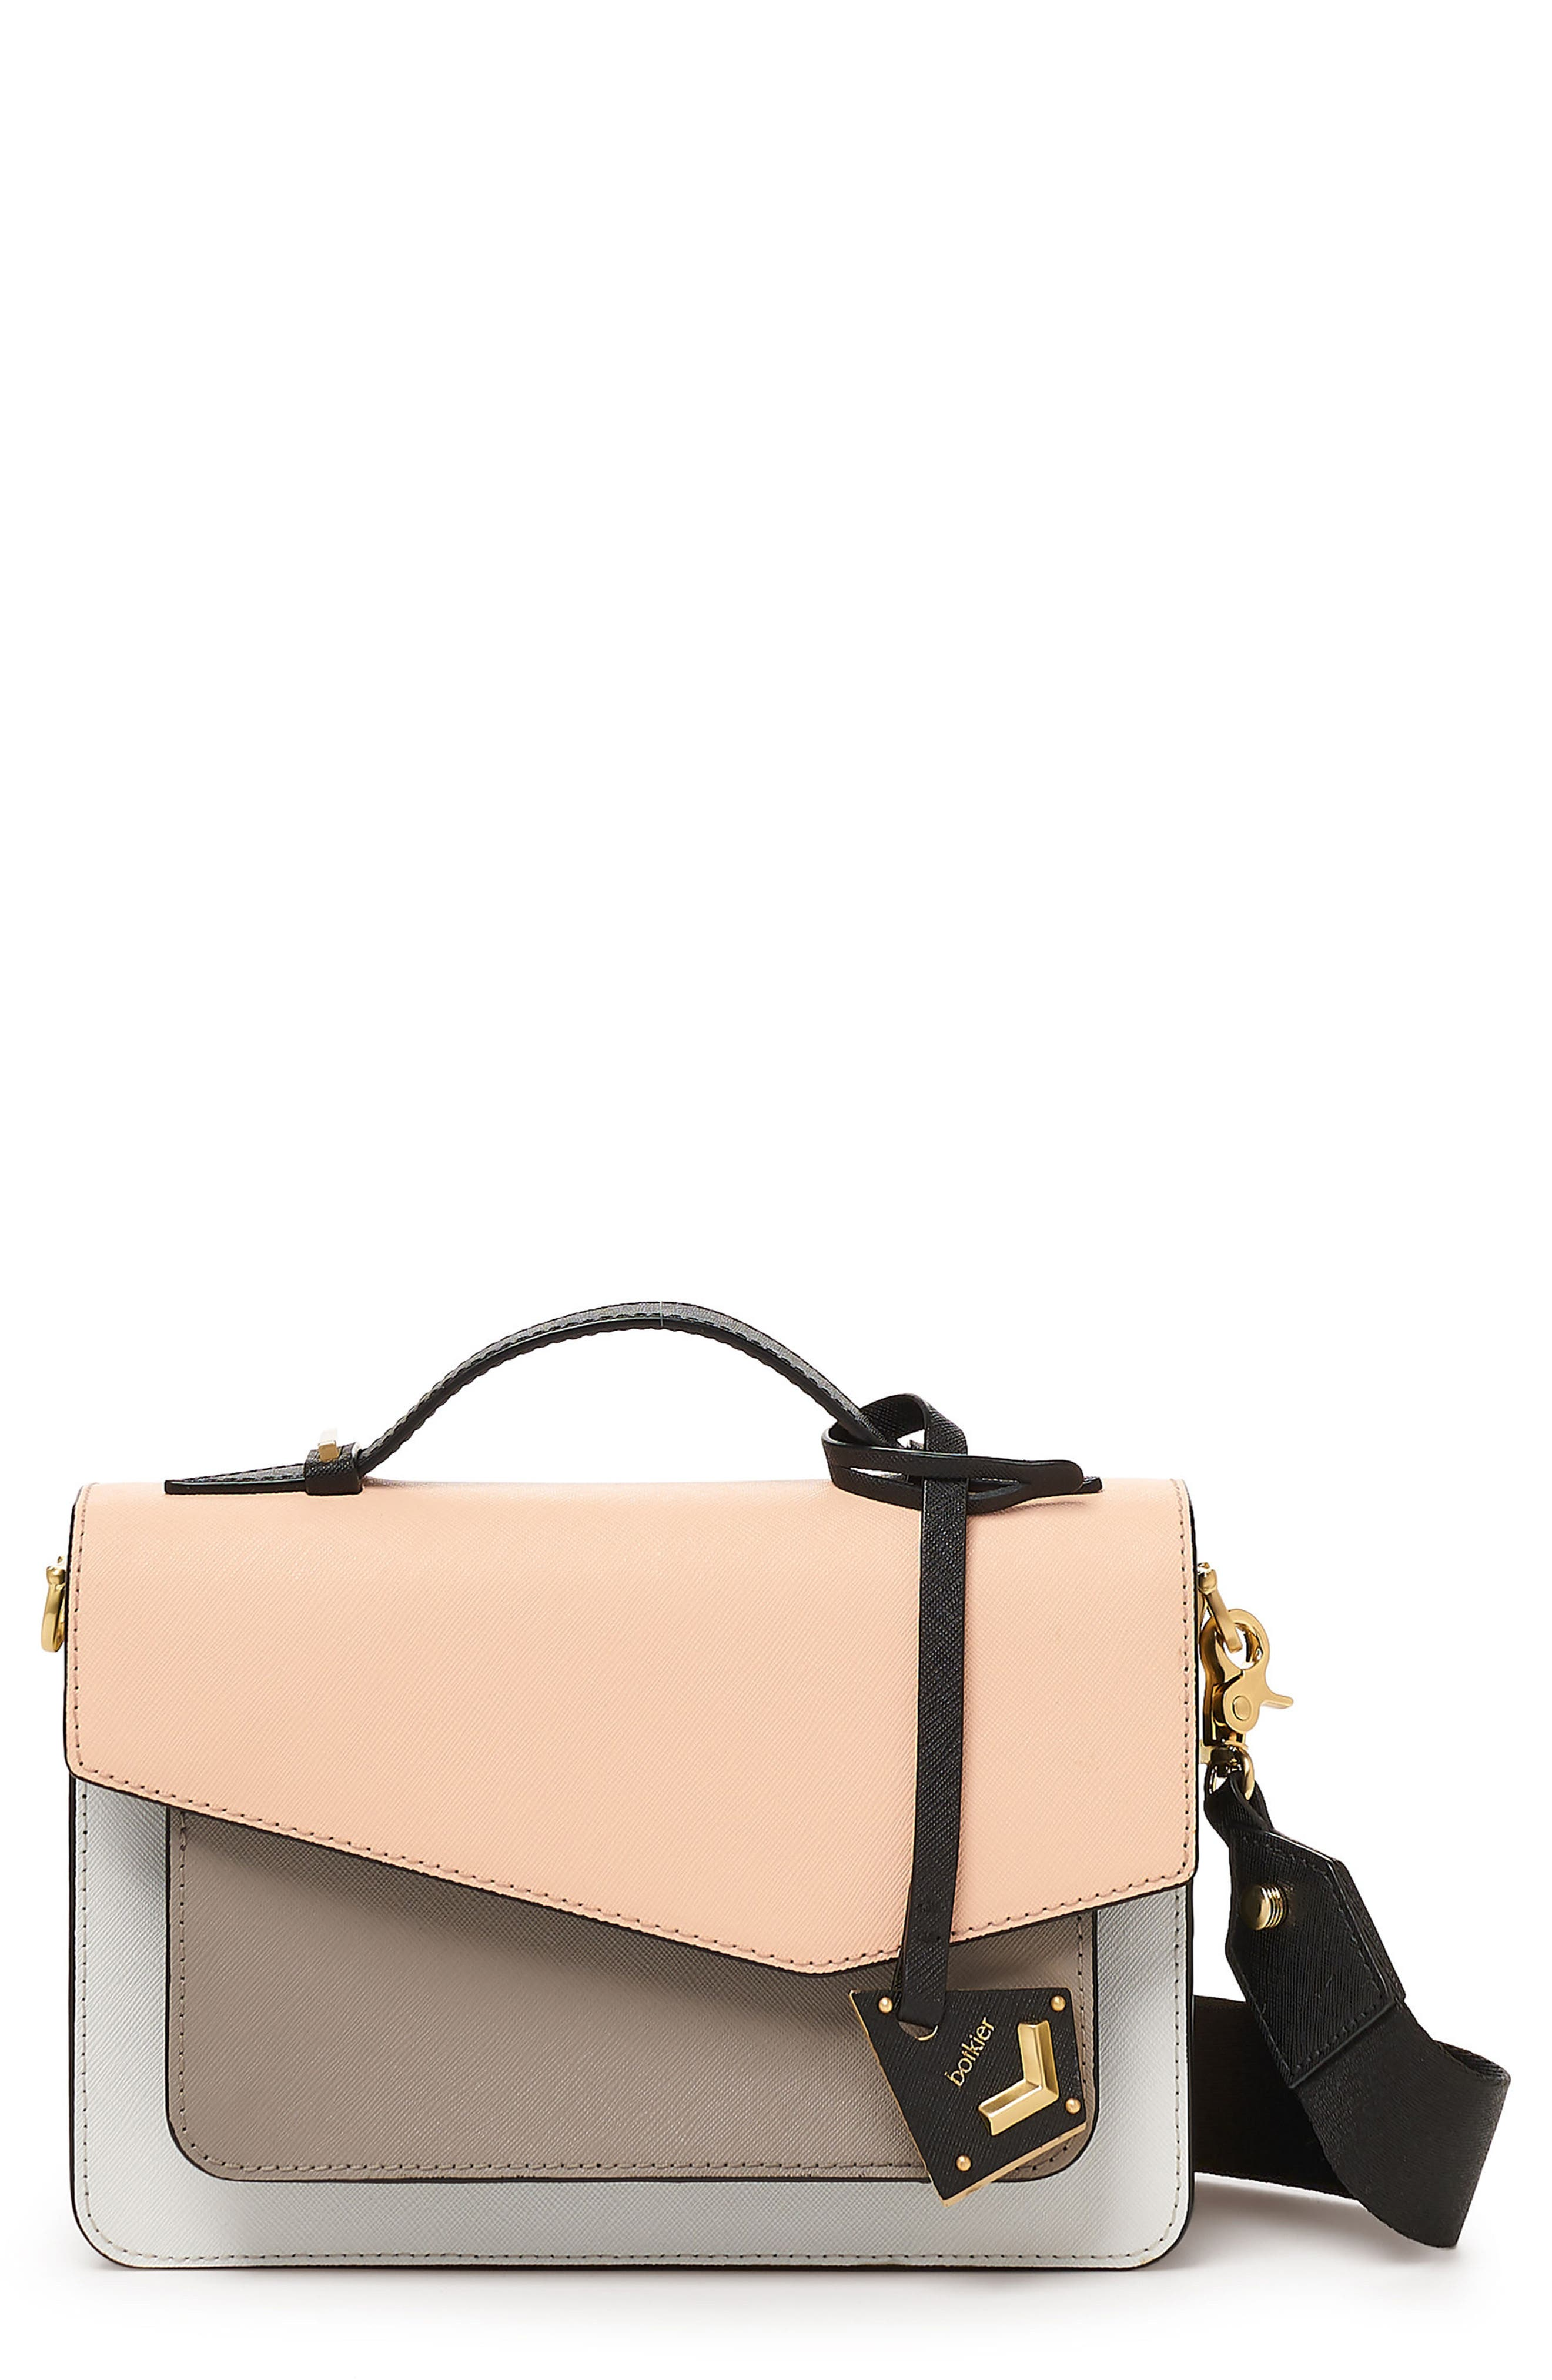 Alternate Image 1 Selected - Botkier Cobble Hill Leather Crossbody Bag